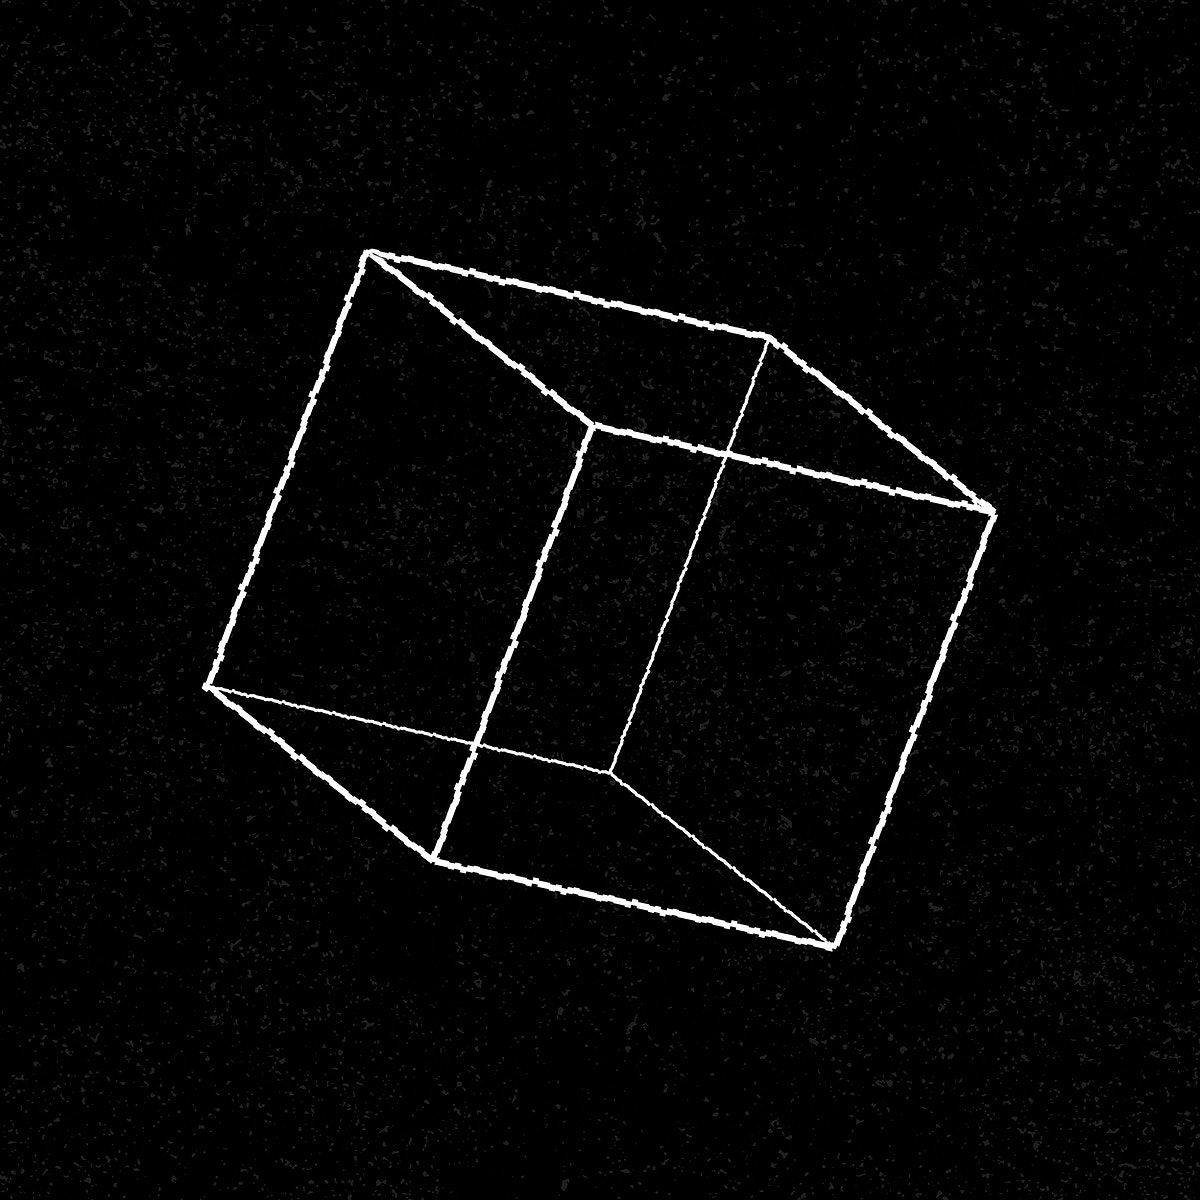 3d Geometric Cube On A Black Background Vector Free Image By Rawpixel Com Aew Vector Free Black Backgrounds Geometric